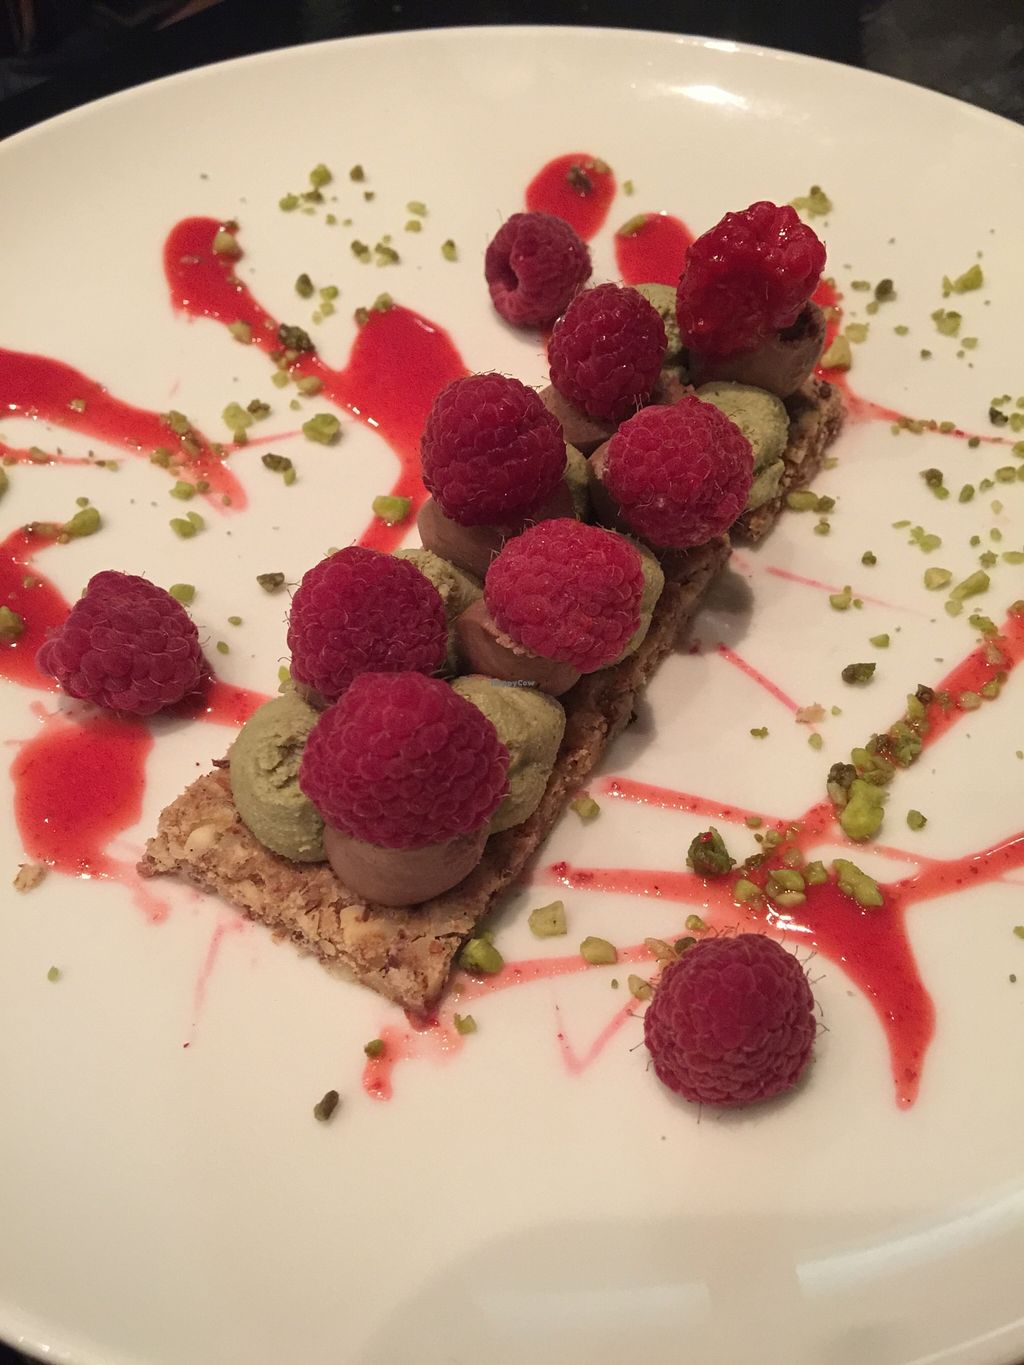 """Photo of 42 Degres  by <a href=""""/members/profile/Anne%20VDH"""">Anne VDH</a> <br/>Divine pistacchio and raspberry dessert! <br/> March 15, 2016  - <a href='/contact/abuse/image/44057/140090'>Report</a>"""